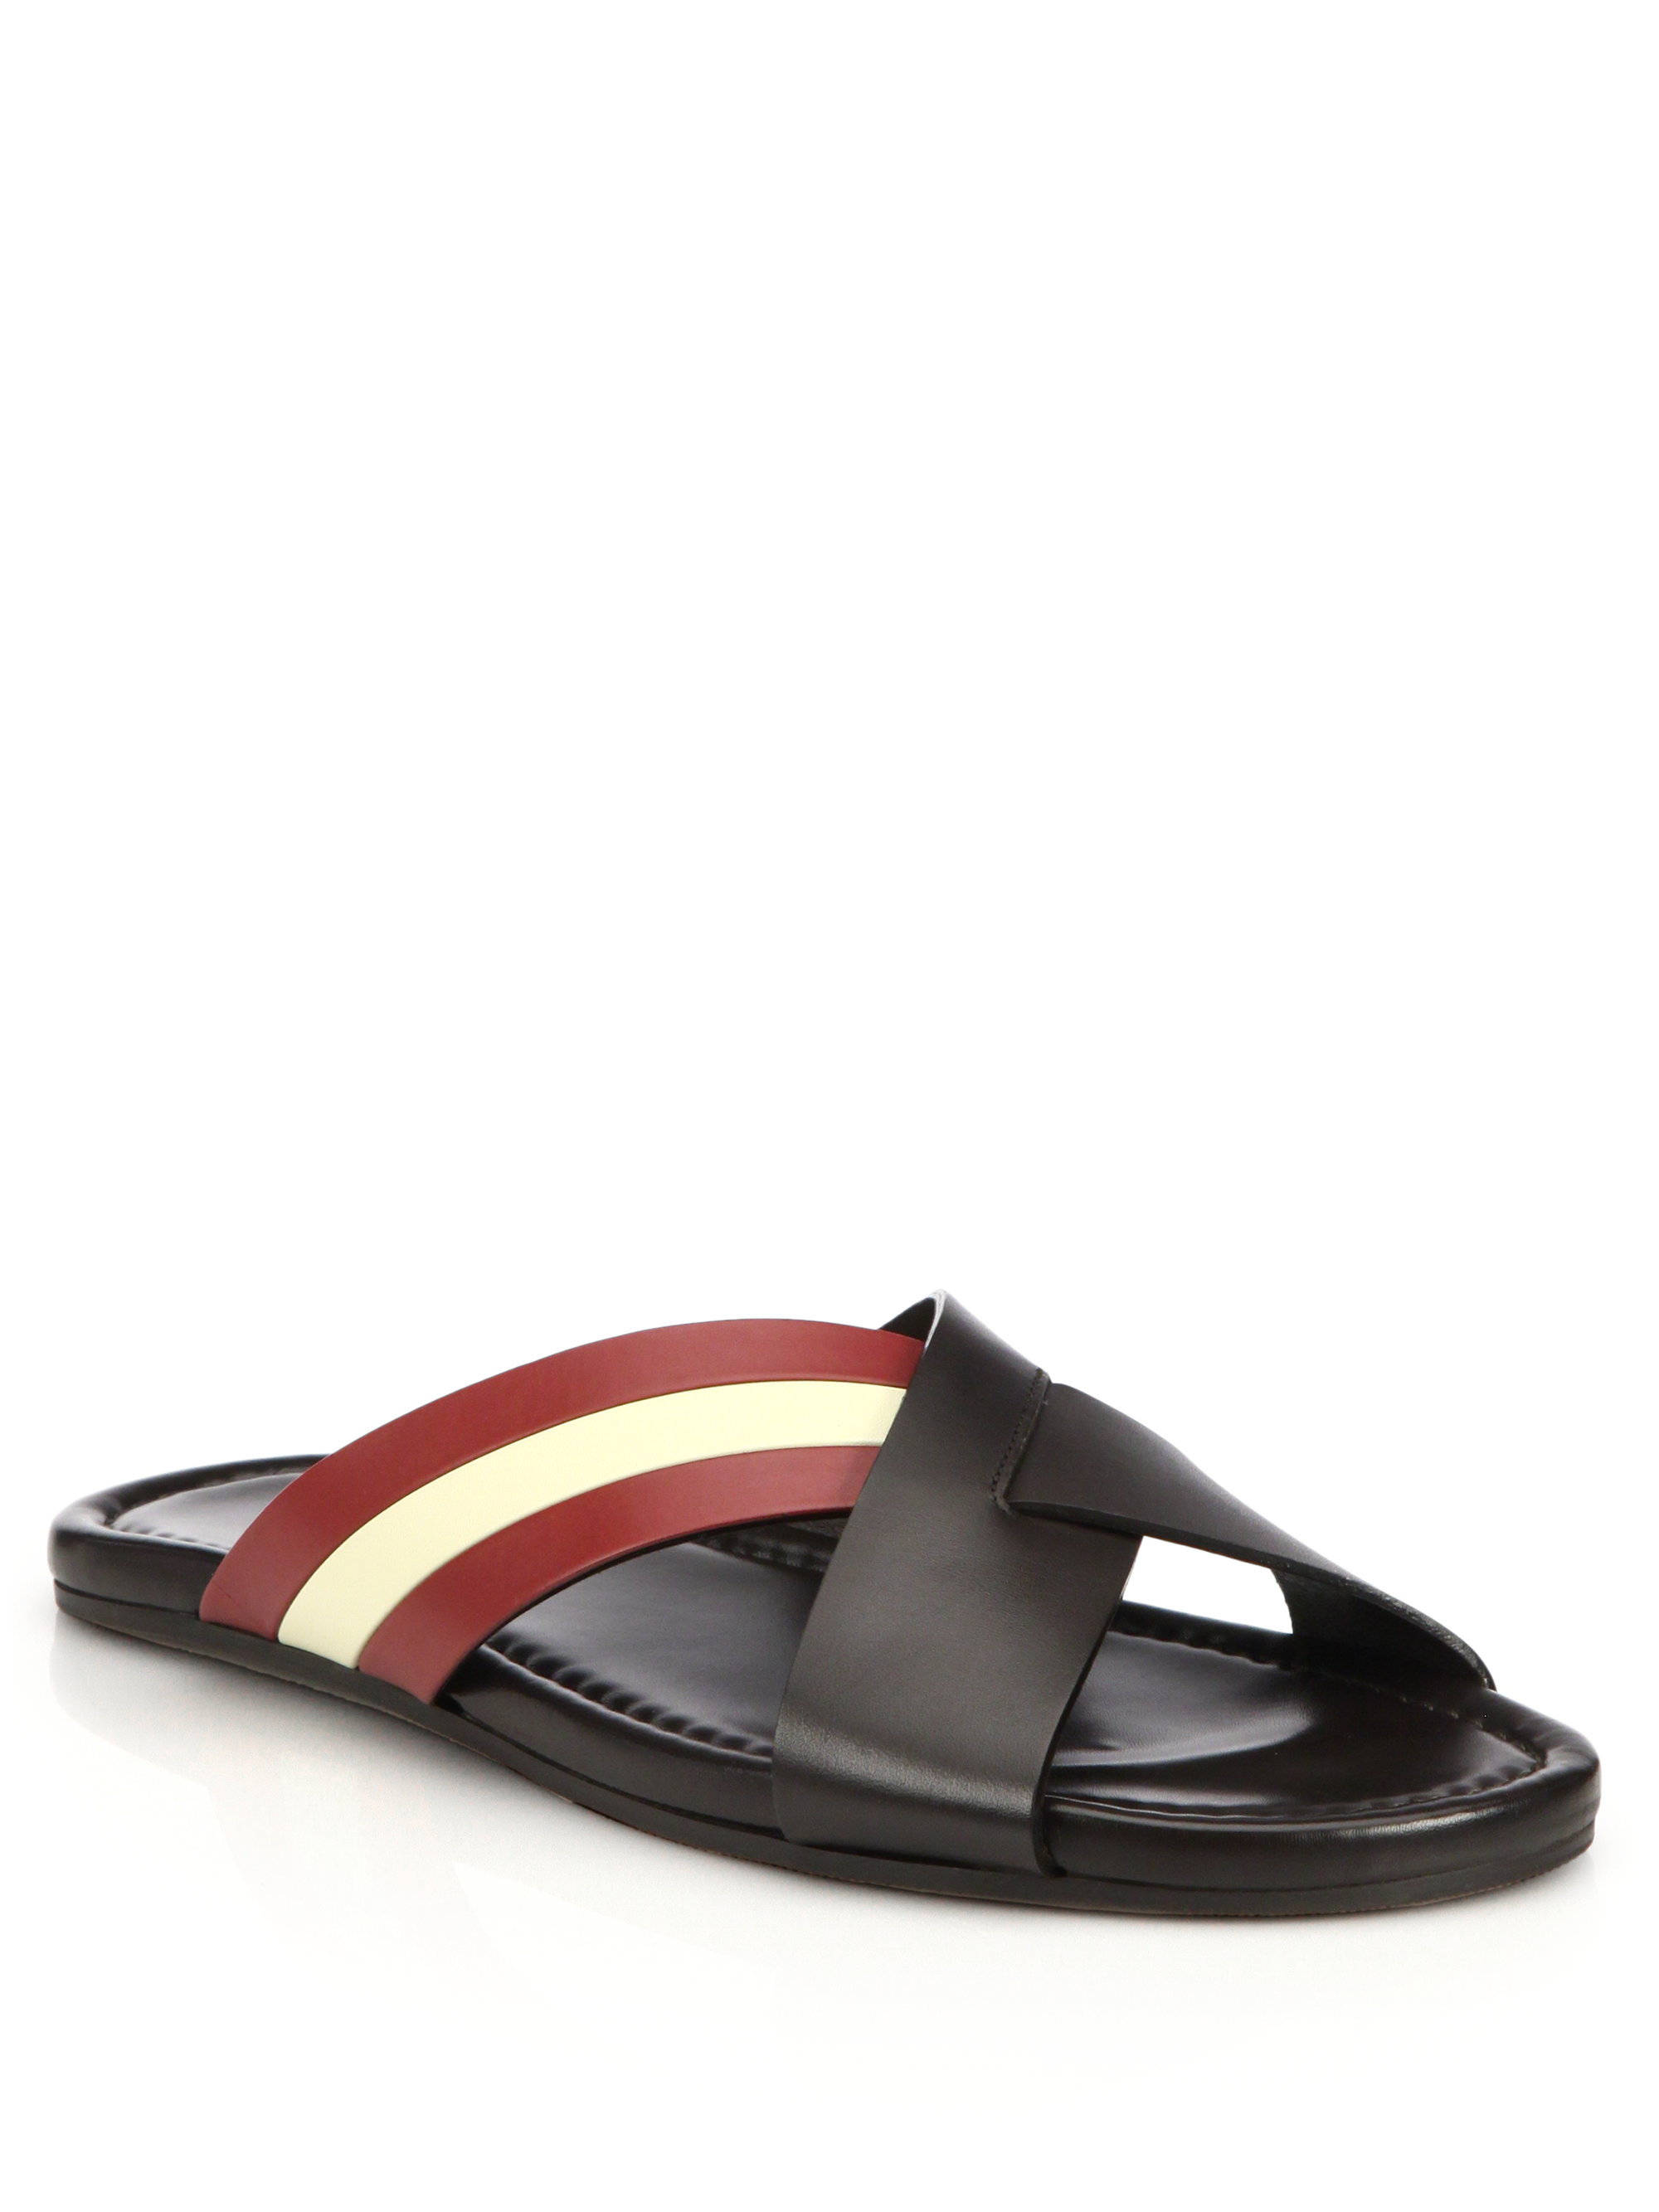 Bally Suede Sandals Browse For Sale Fashion Style For Sale Zk0XBzf